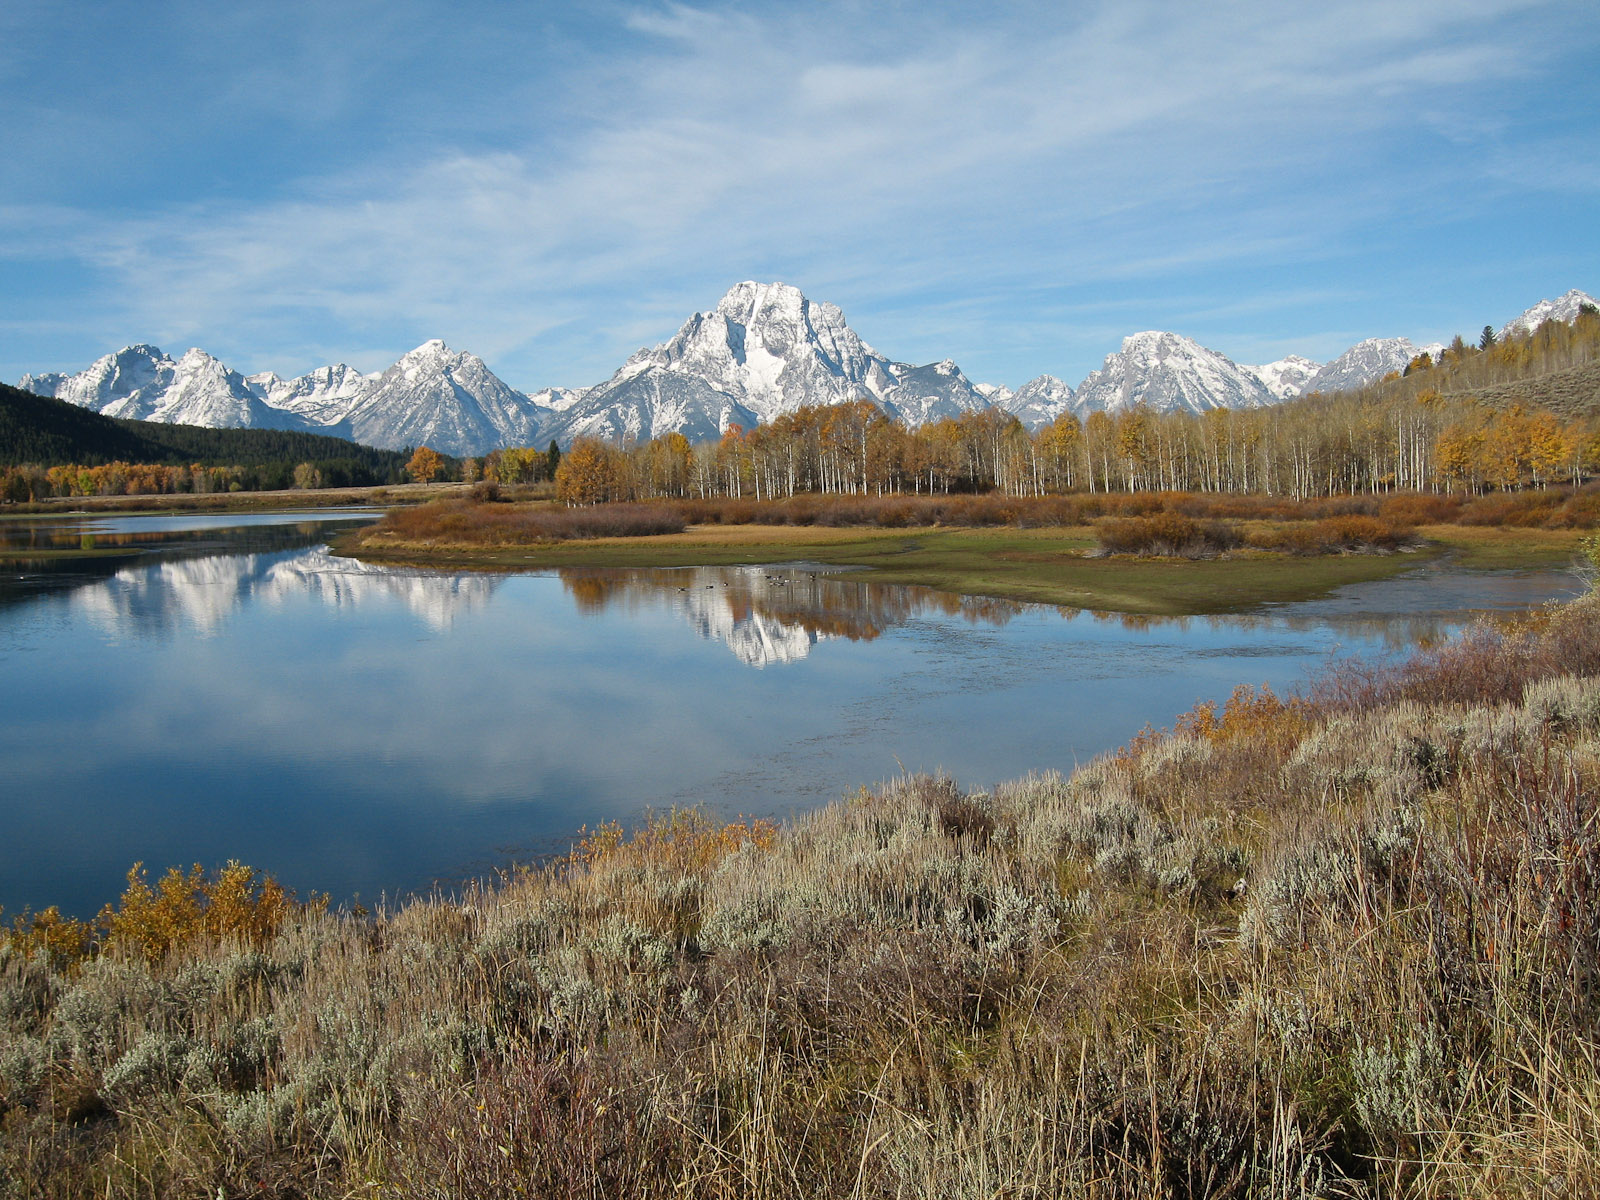 Oxbow Bend View of Mount Moran